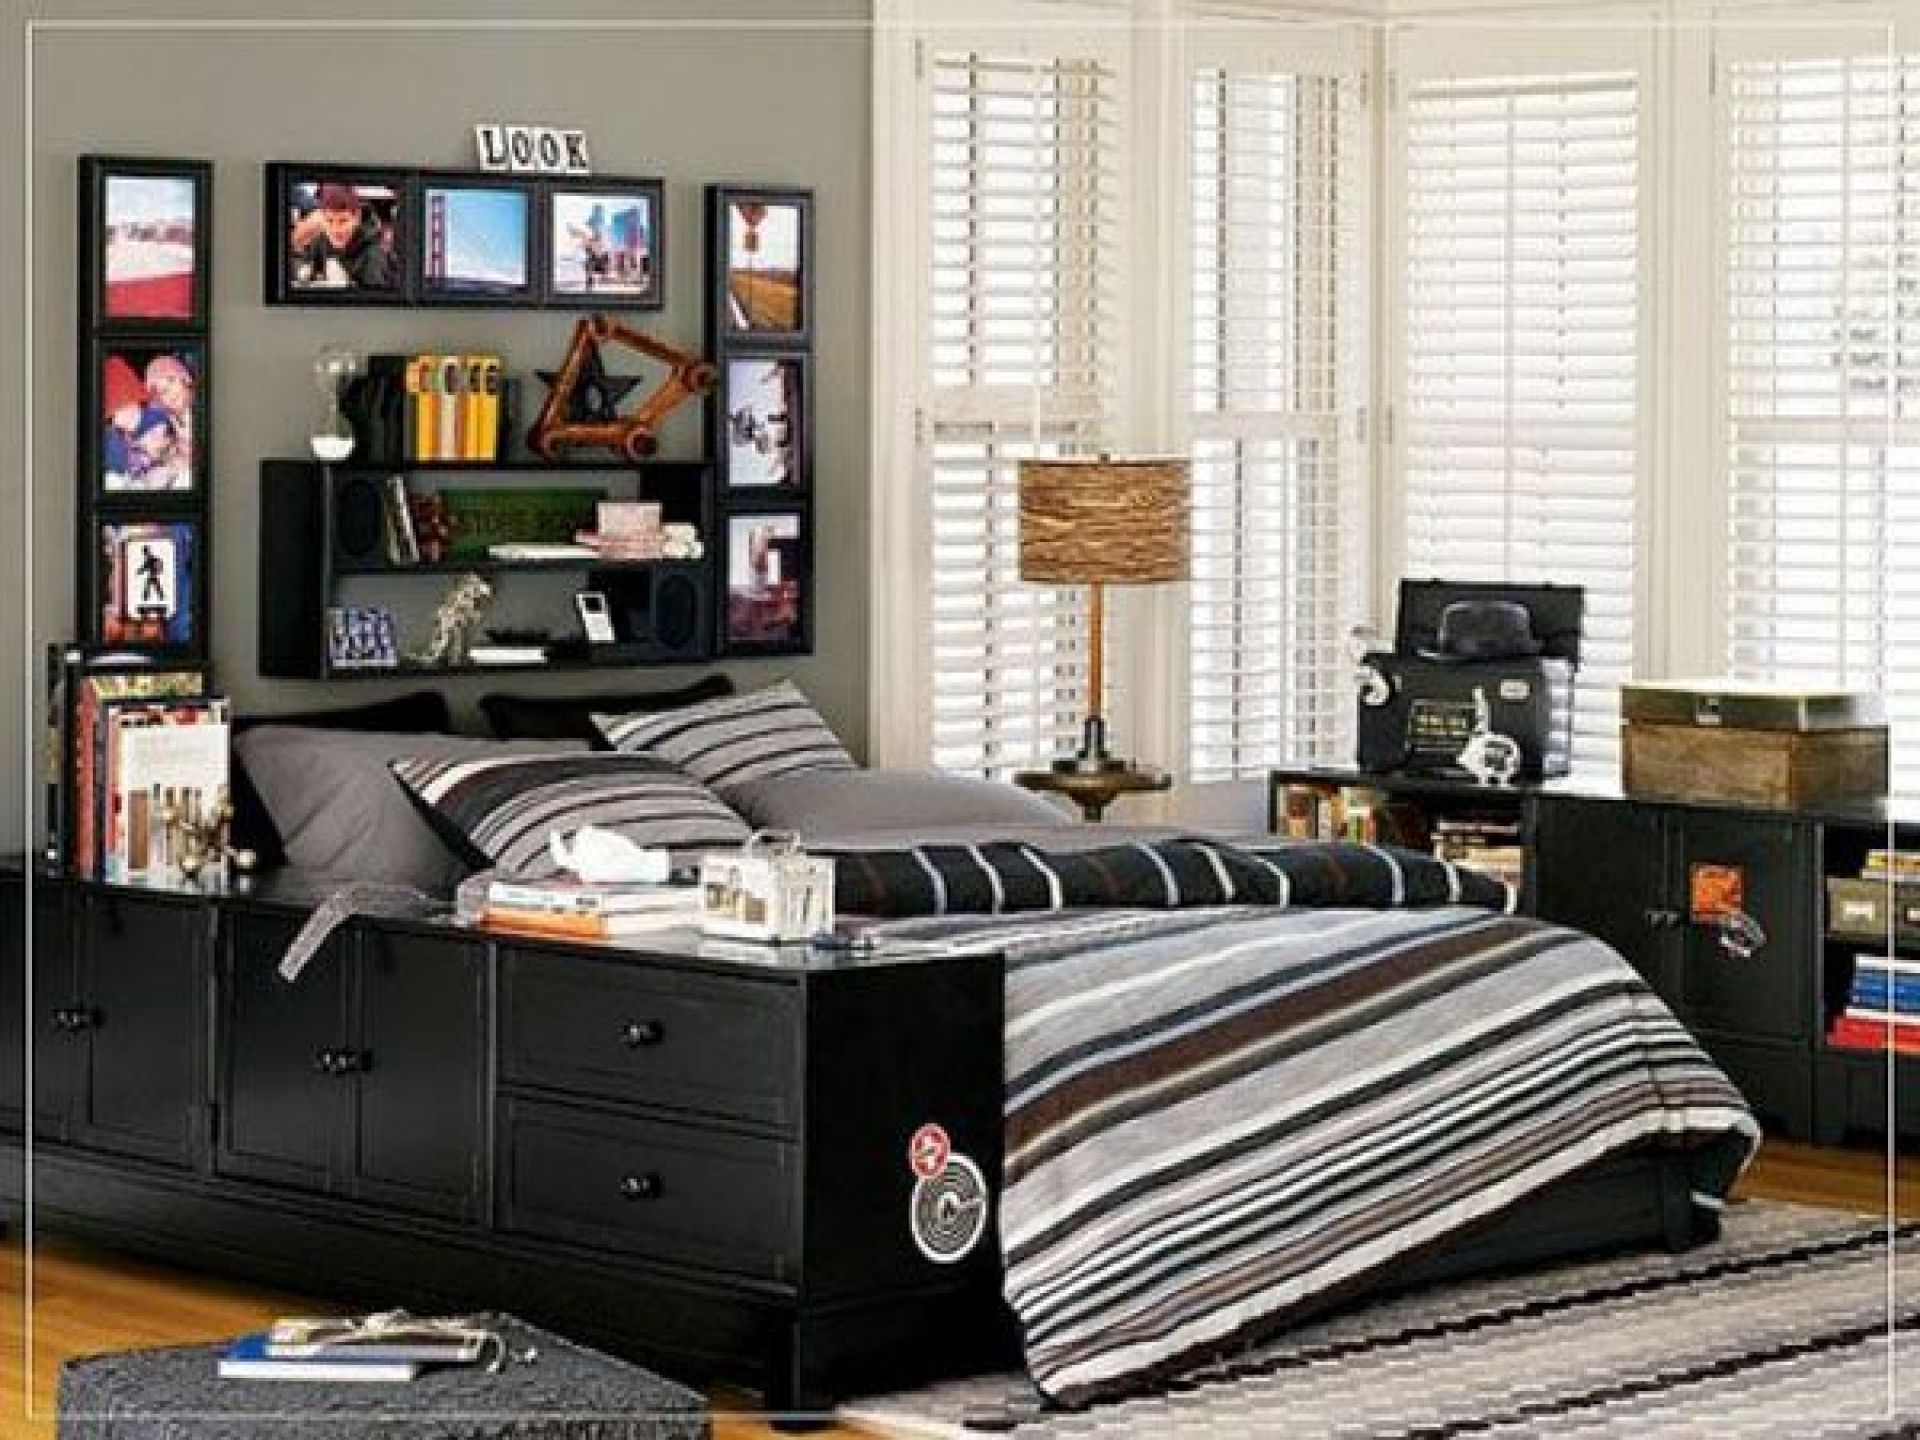 Cool Room Design Ideas cool bedroom ideas for teenage guys - home design